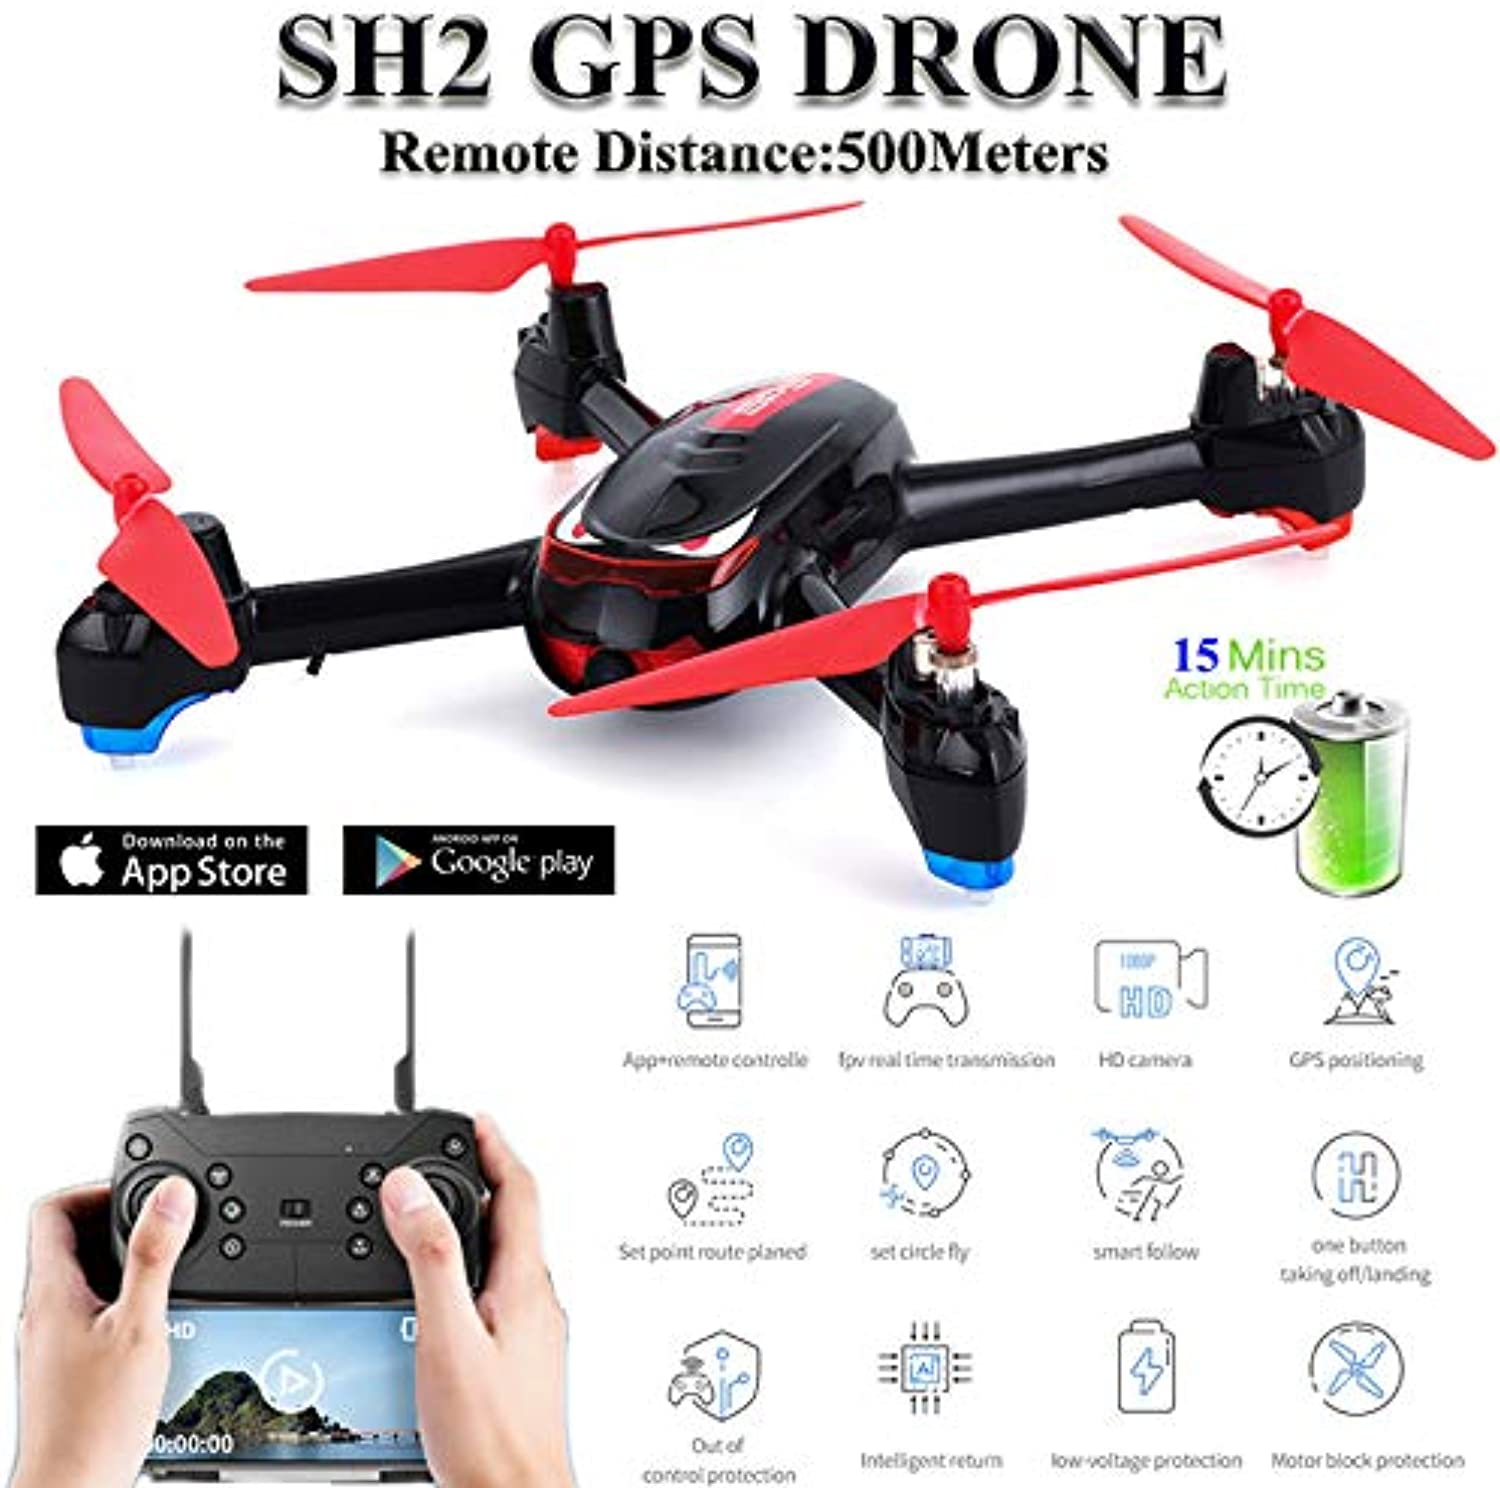 Faironly RC Drohne GPS mit Kamera HD 1080P Weitwinkel Quadcopter Circle Fly Helikopter red